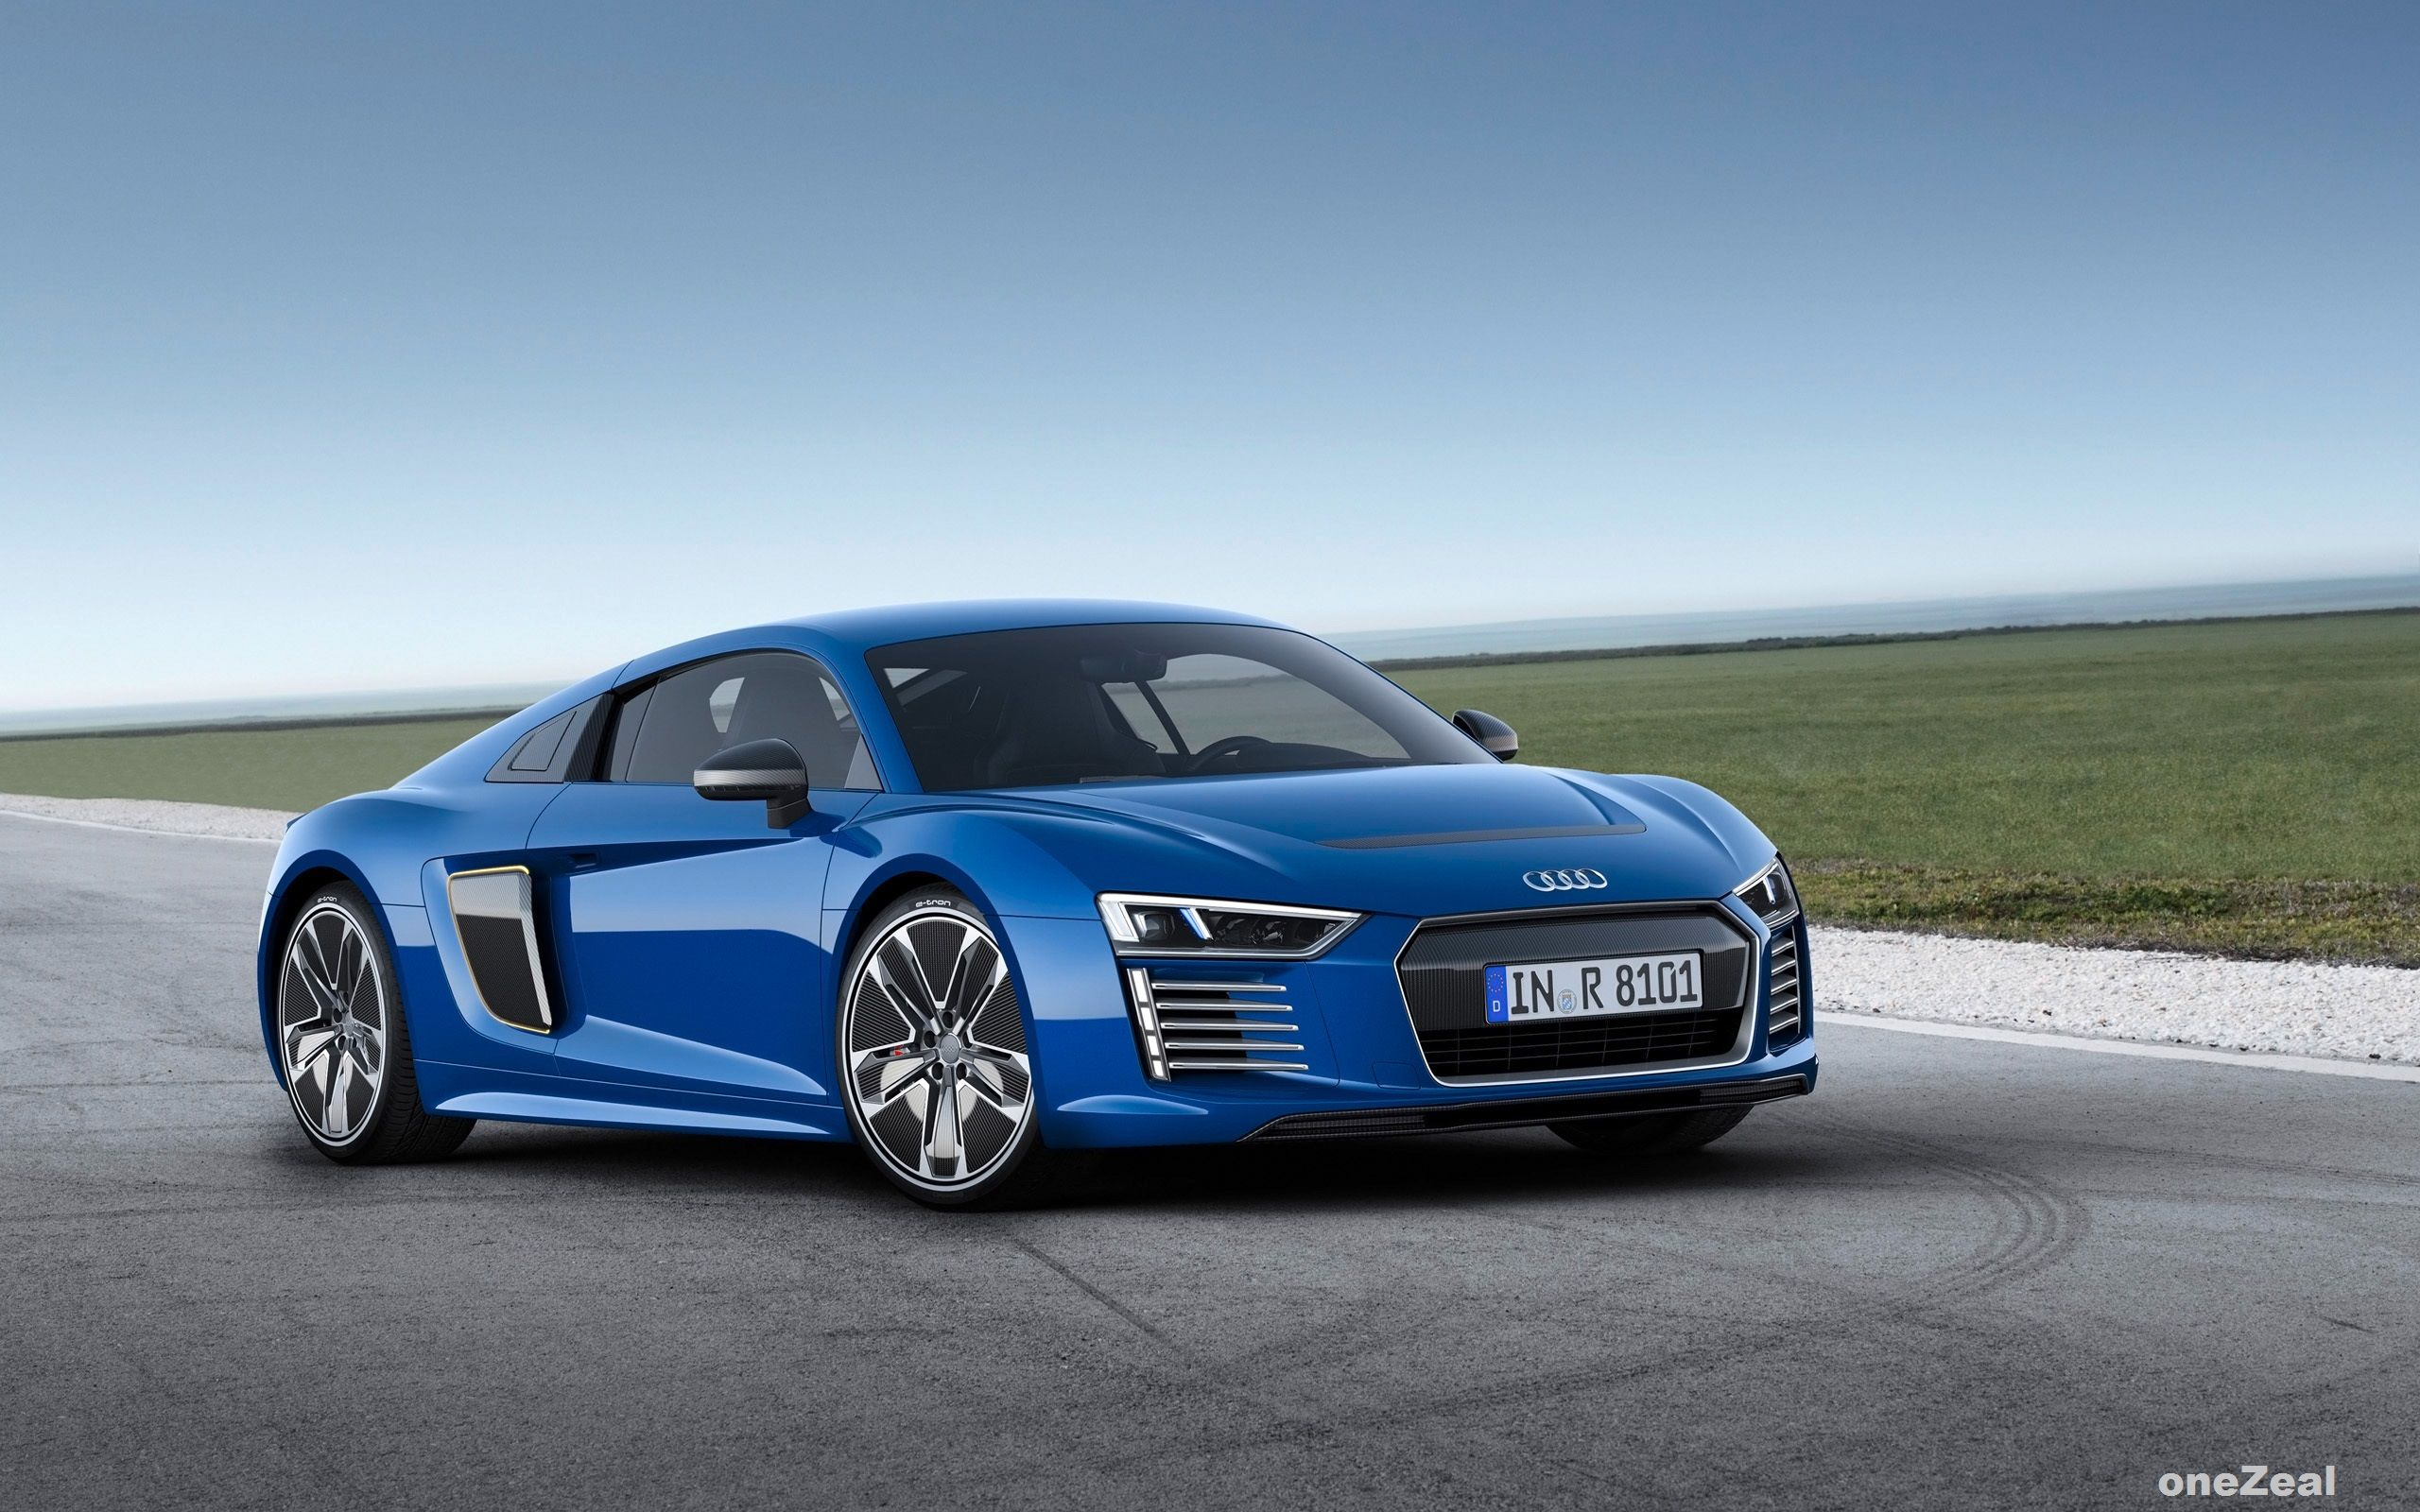 Best HD Audi R8 E Tron 2016 Wallpapers For Your Desktop Mobiles Tablets In  High Quality